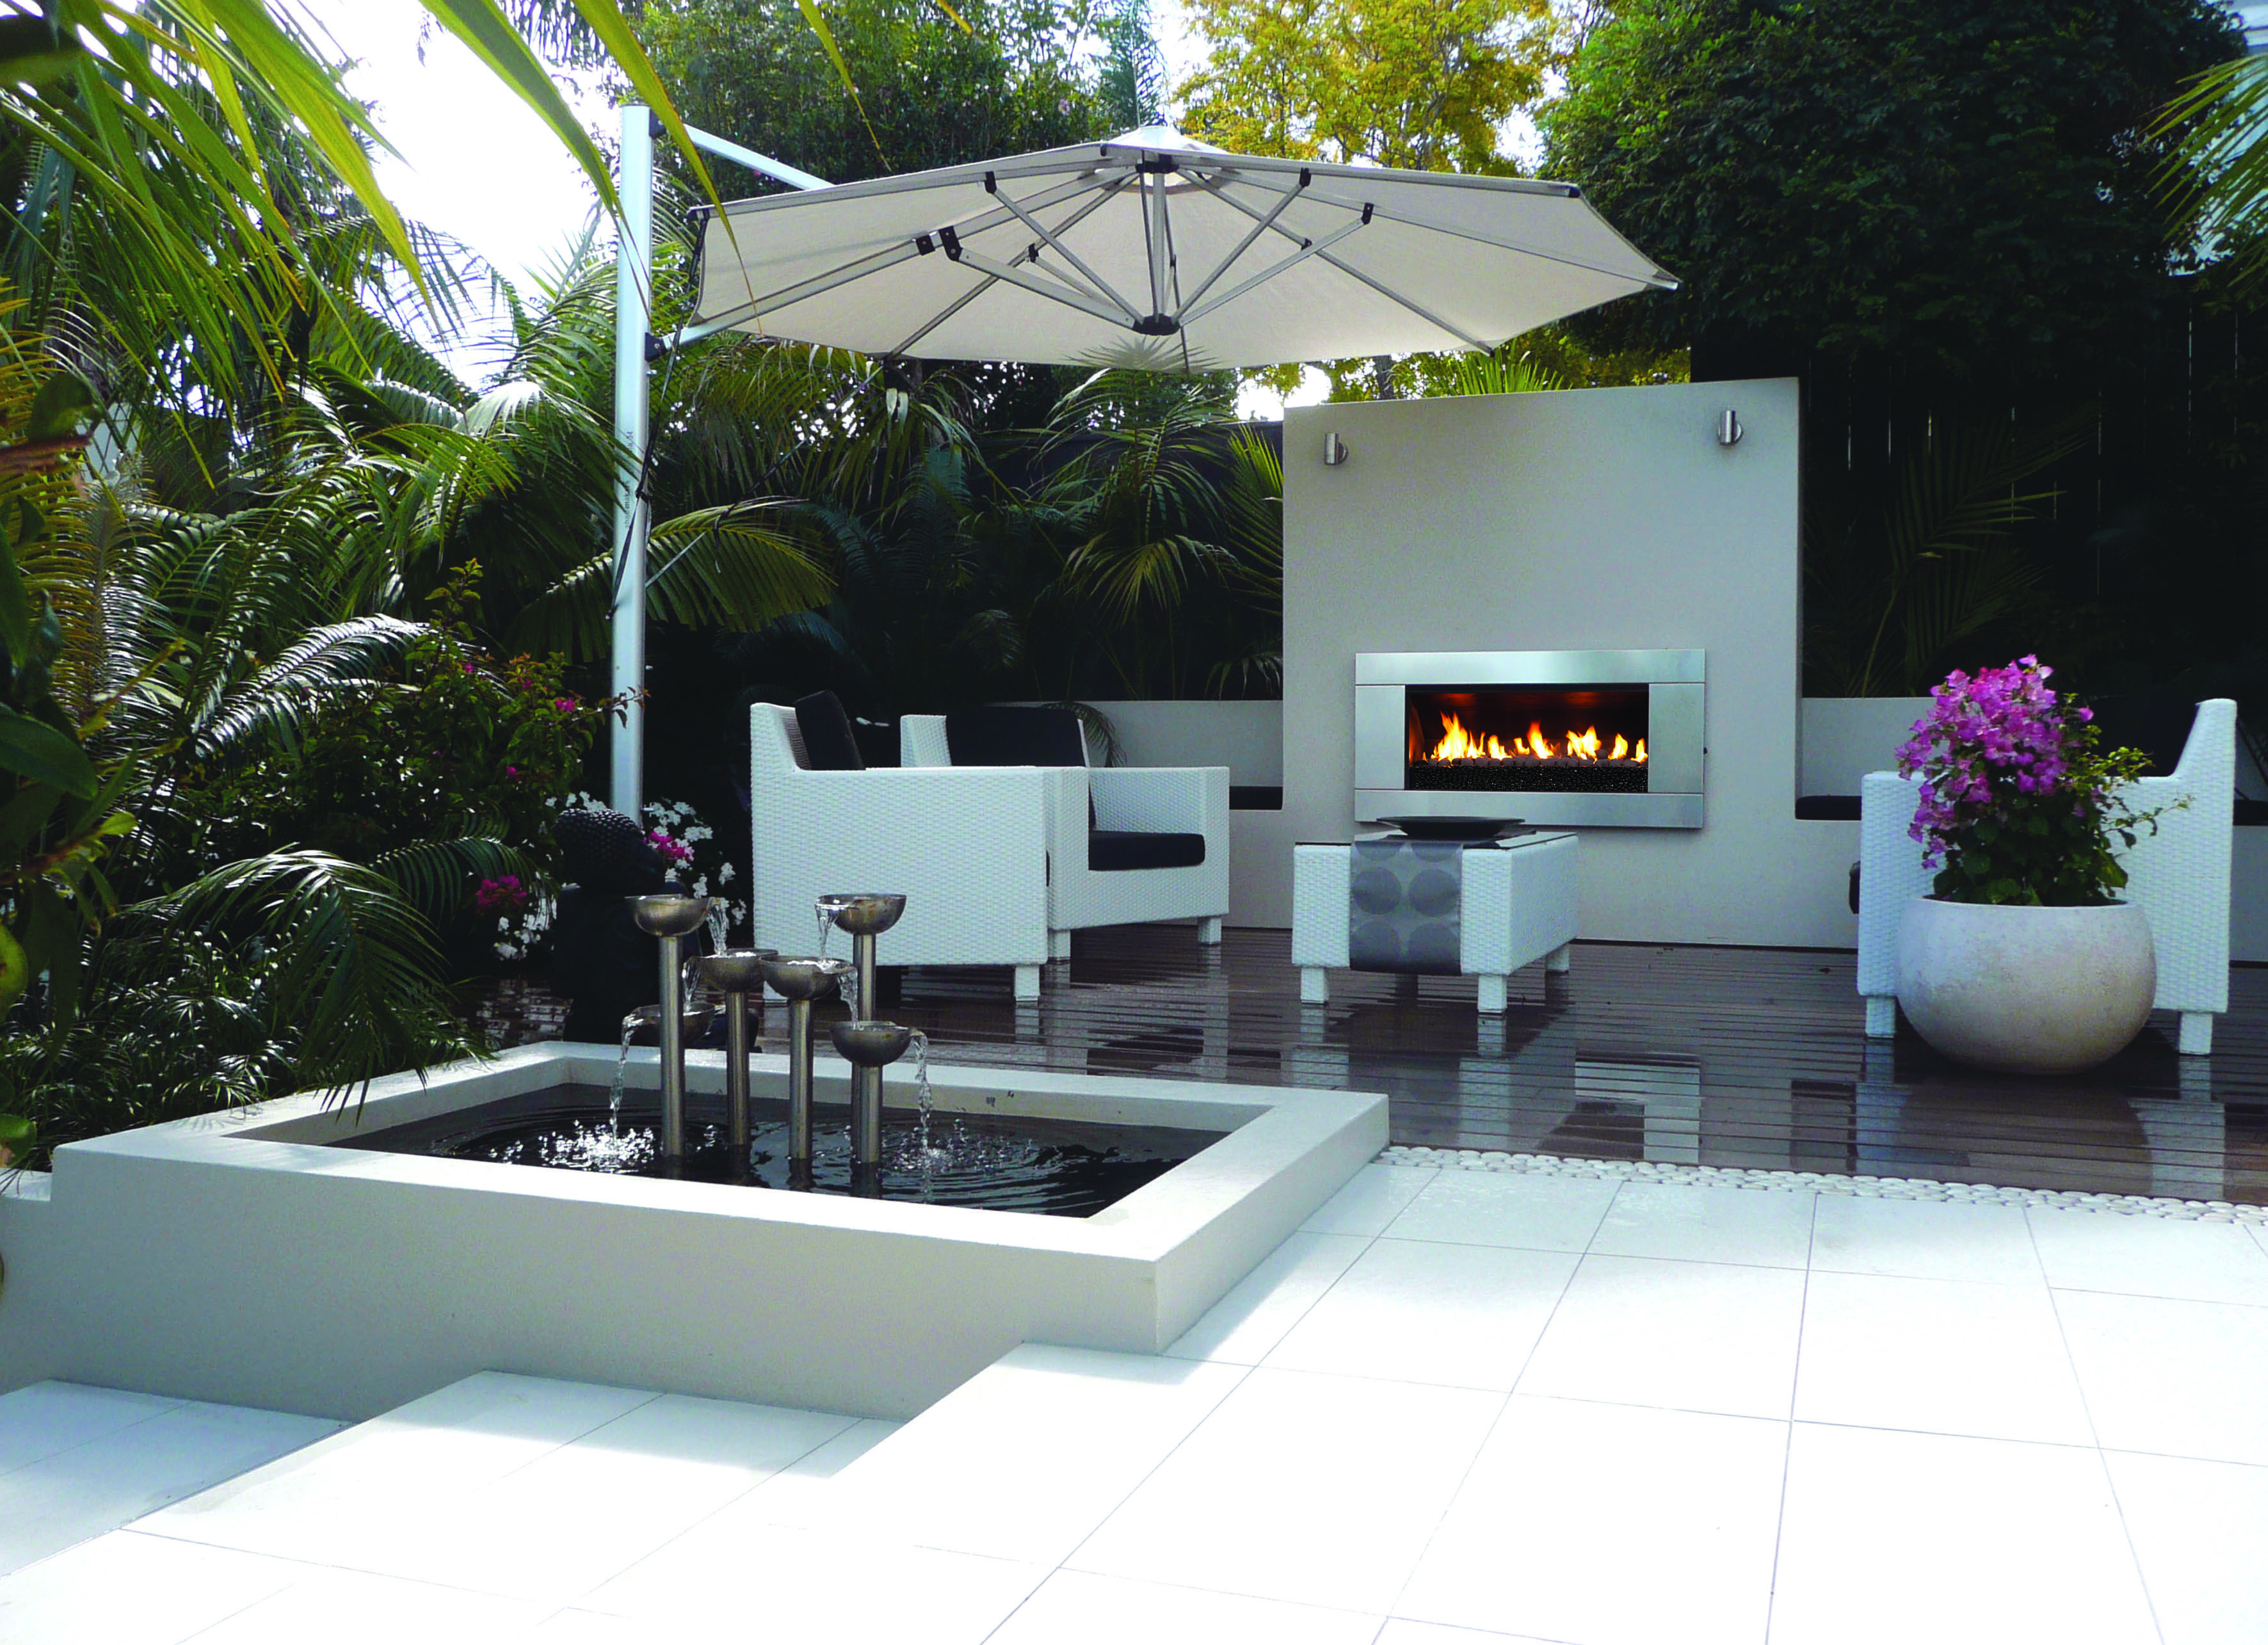 97de6aace87eb206f1ecd478ca7723be Top Result 50 Awesome Steel Outdoor Fireplace Gallery 2018 Hiw6